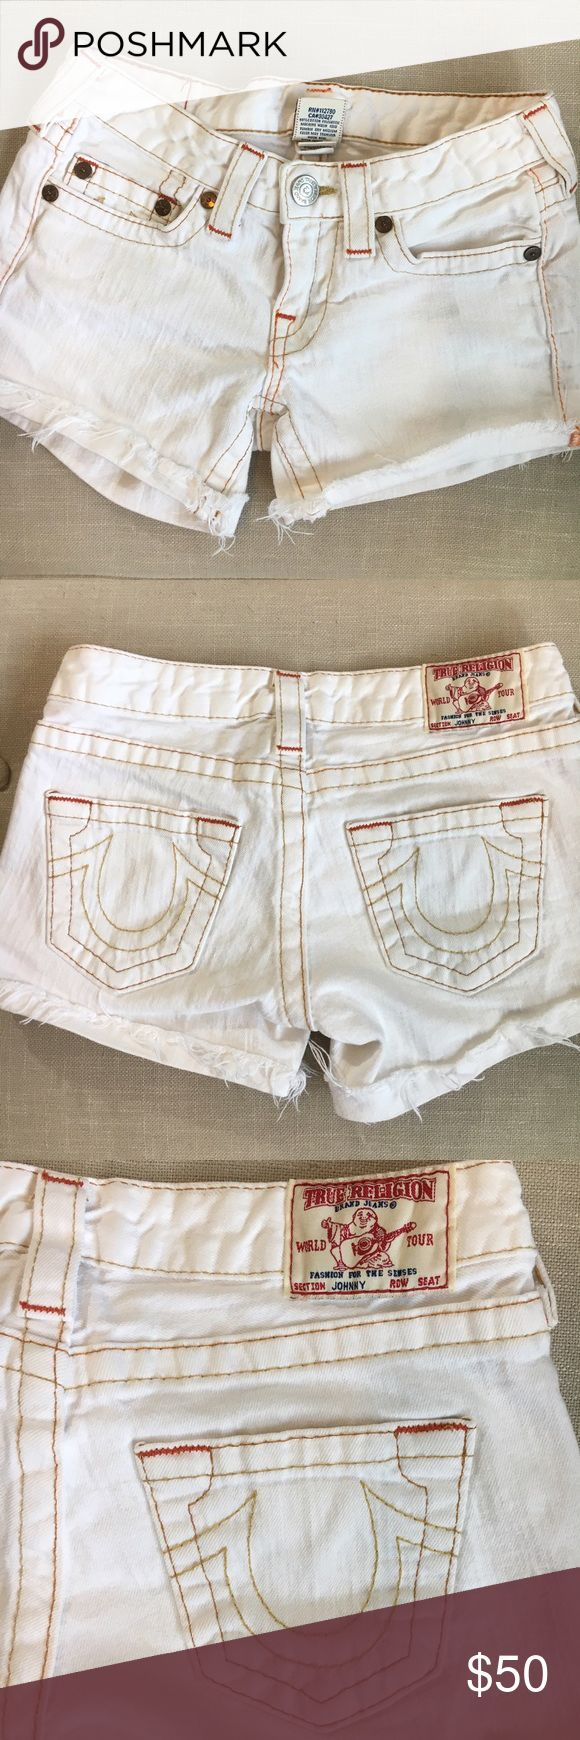 🆕 List True Religion Johnny Cutoff Shorts size 26 These True Religion Johnny Cutoff Shorts size 26 are white with Cutoff frayed hem line and 5 pockets. These shorts are super sexy and hot for summer! In excellent preloved condition! 99% cotton and 1% elastic. They have a very cool orange and tan thread accent which gives them a very crisp and vibrant look! Offers welcome! True Religion Shorts Jean Shorts